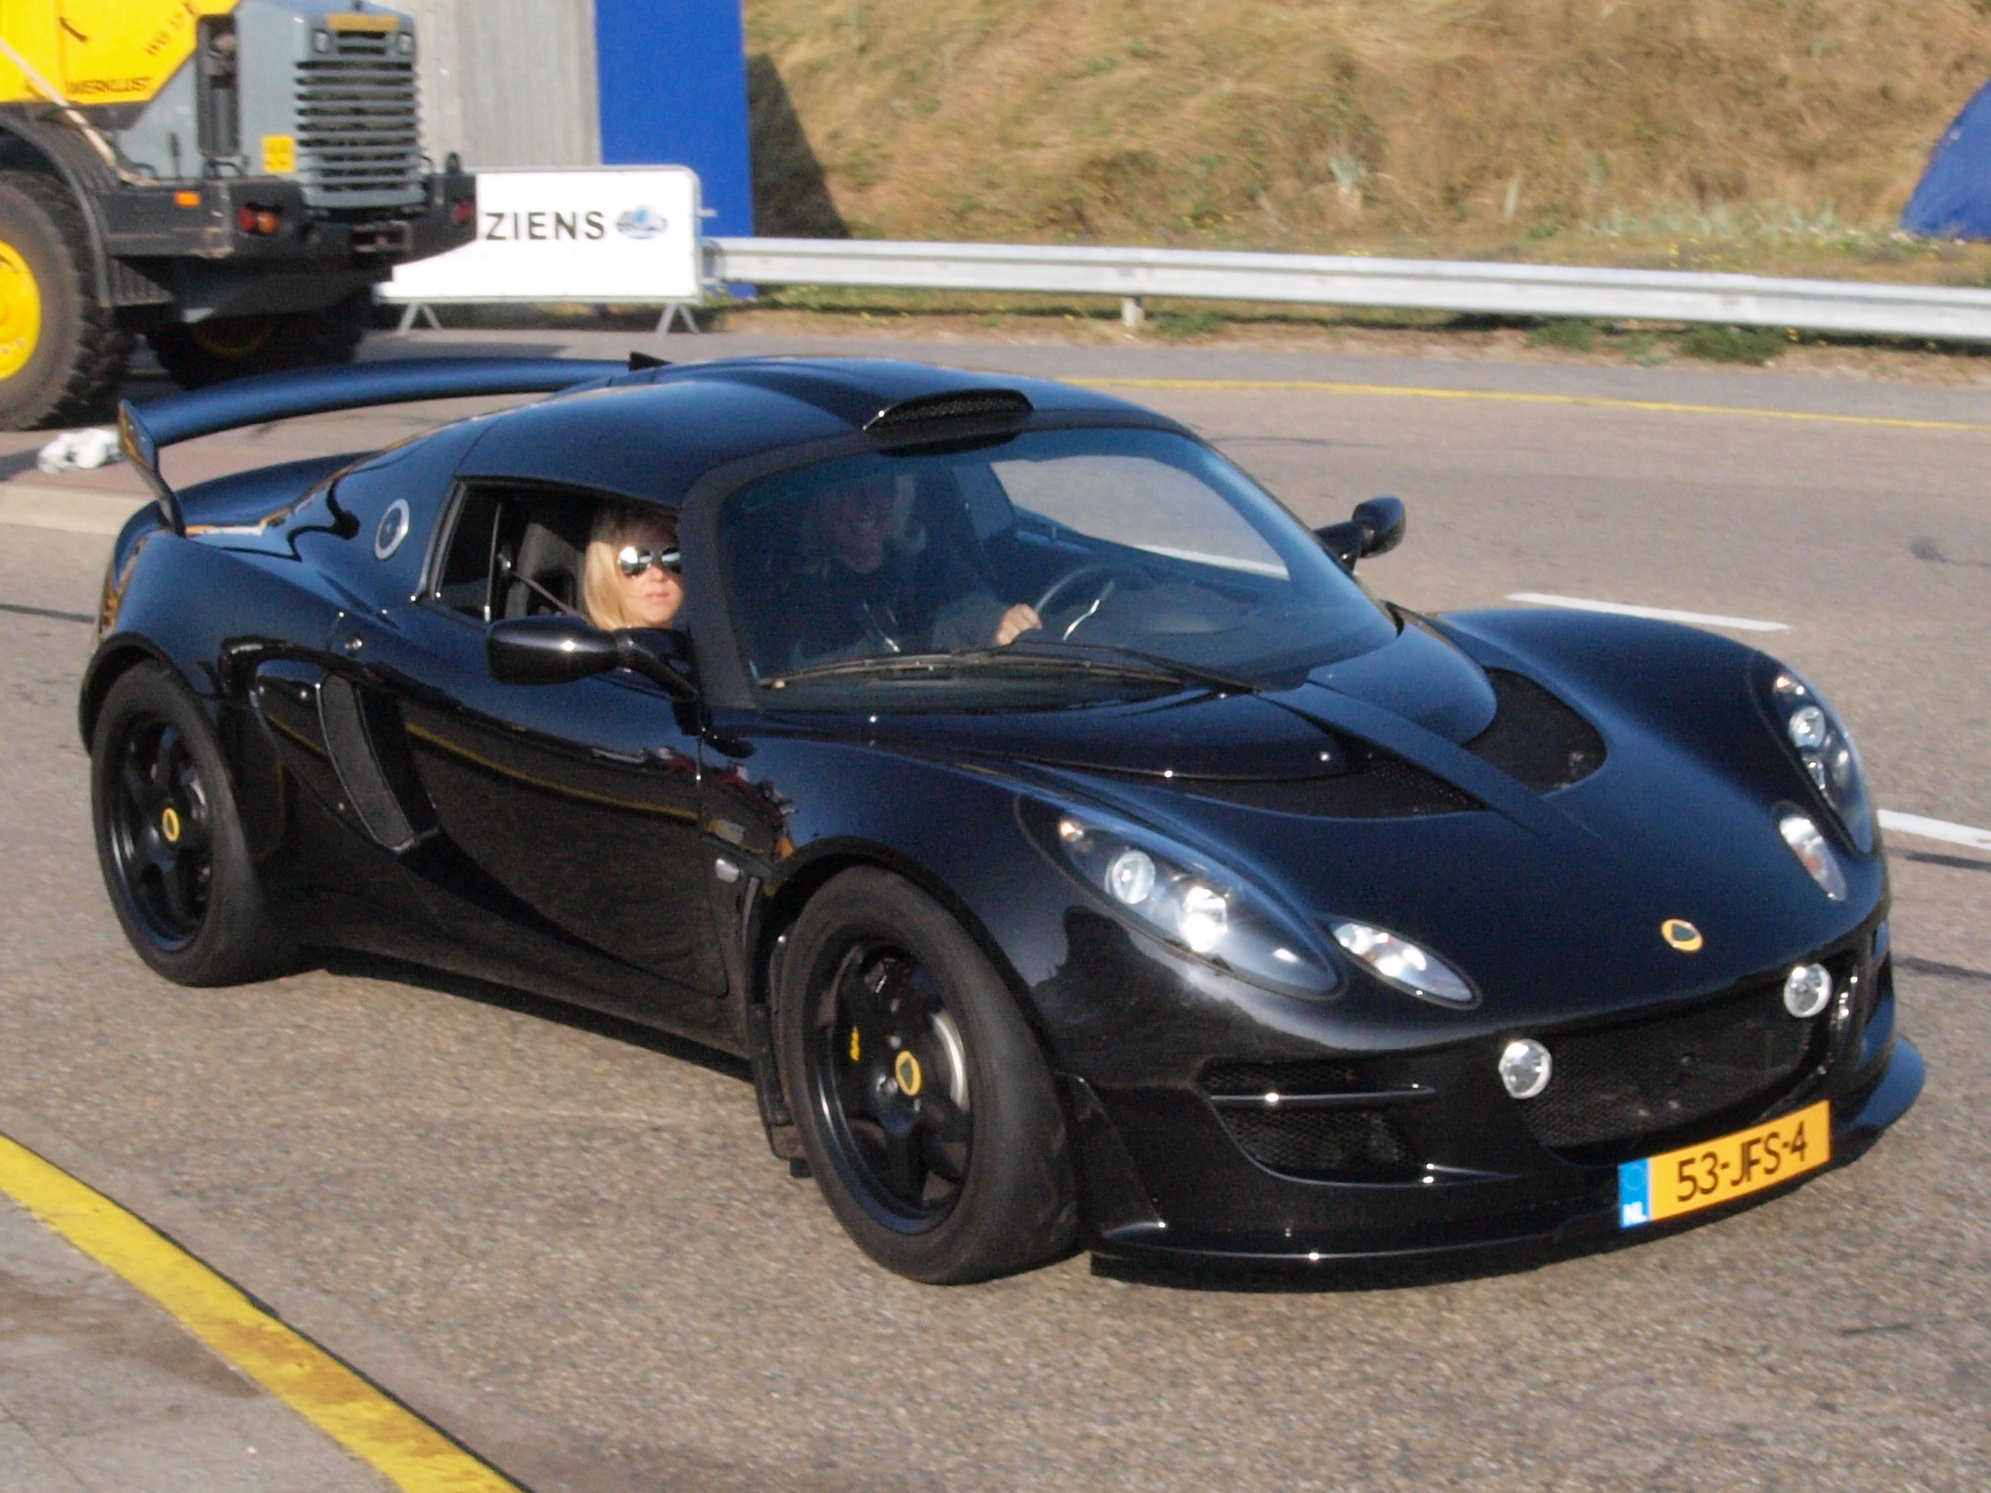 file lotus exige s 240 dutch licence registration 53 jfs 4 pic1 jpg wikimedia commons. Black Bedroom Furniture Sets. Home Design Ideas